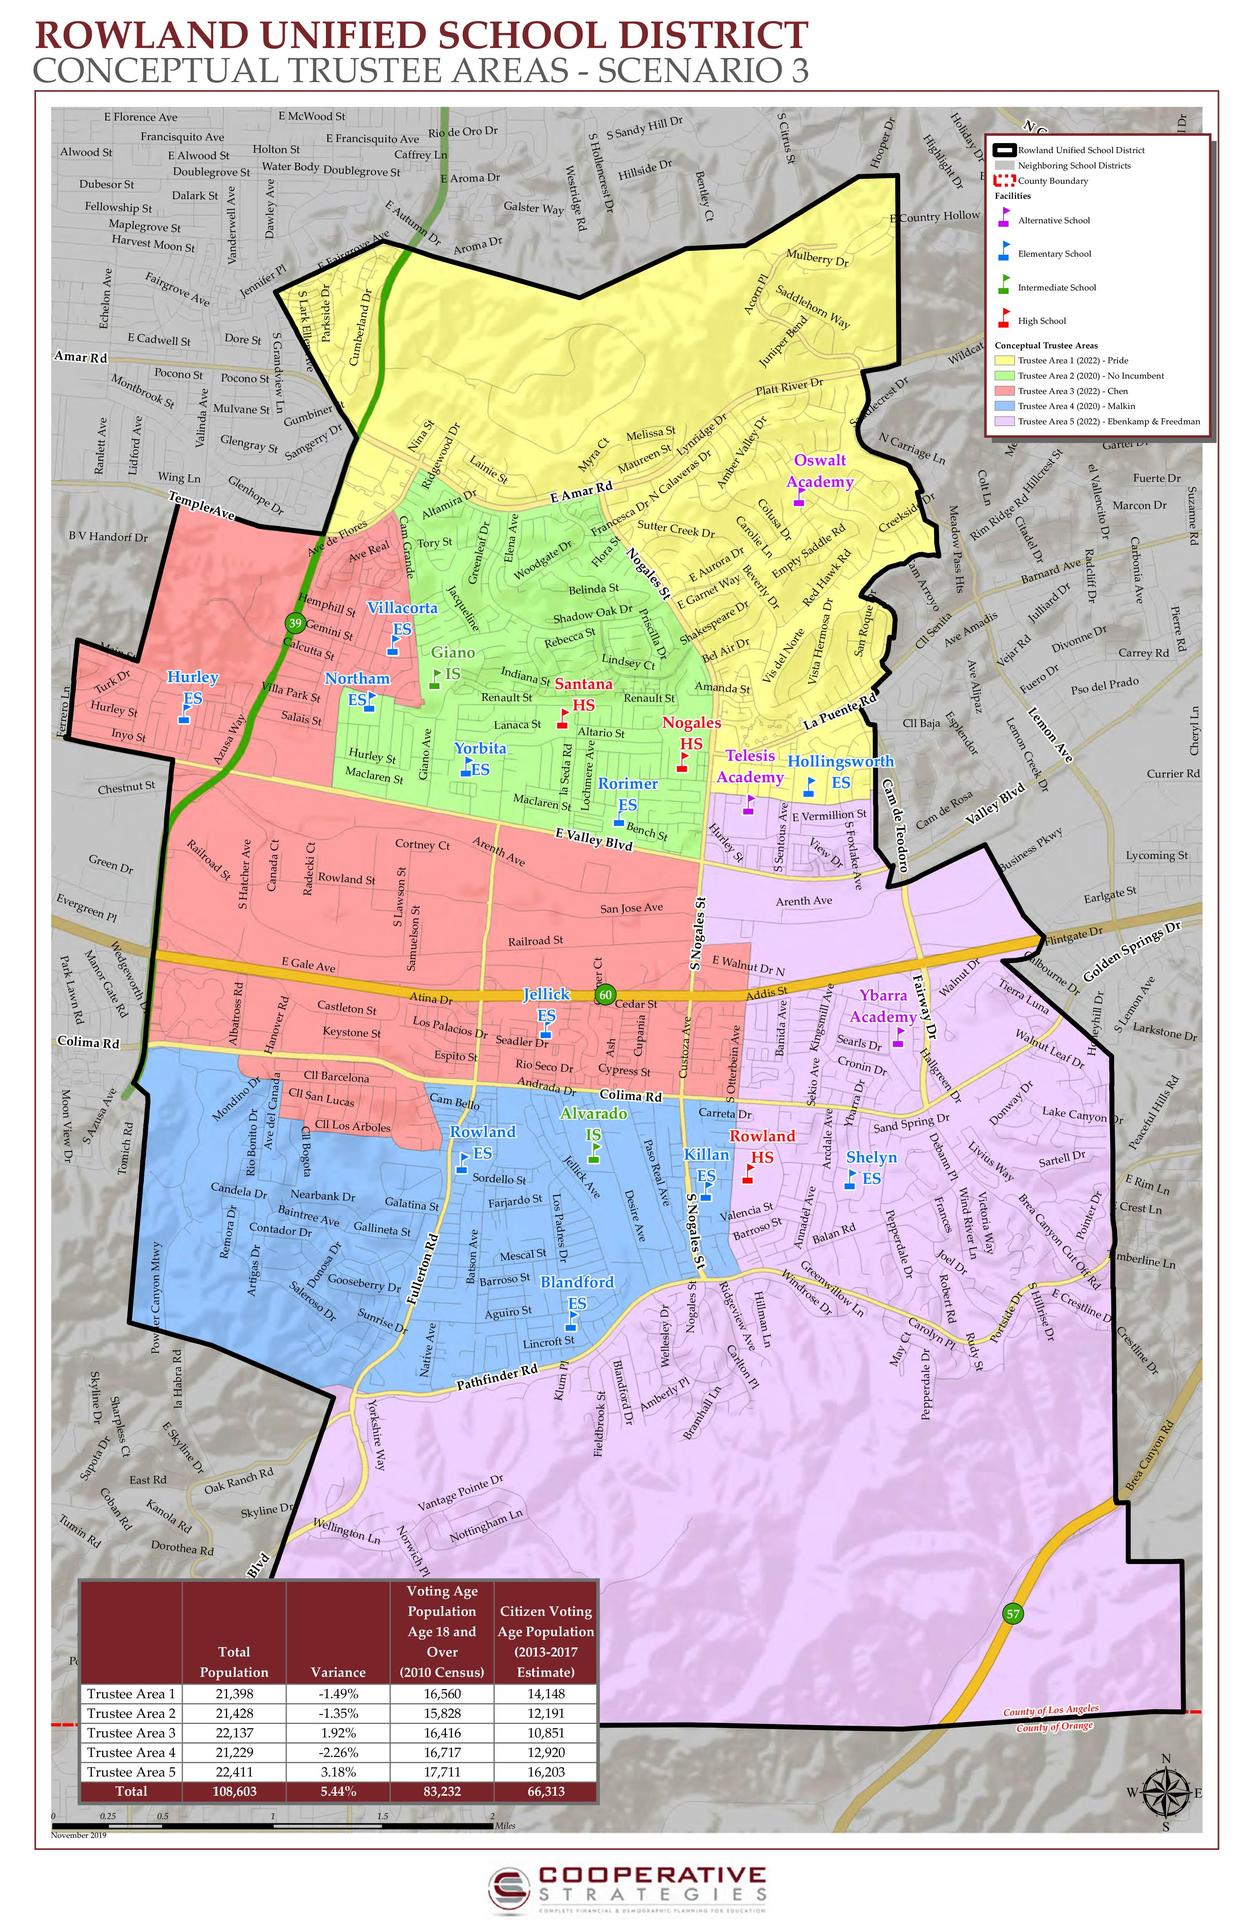 RUSD Trustee Area Map